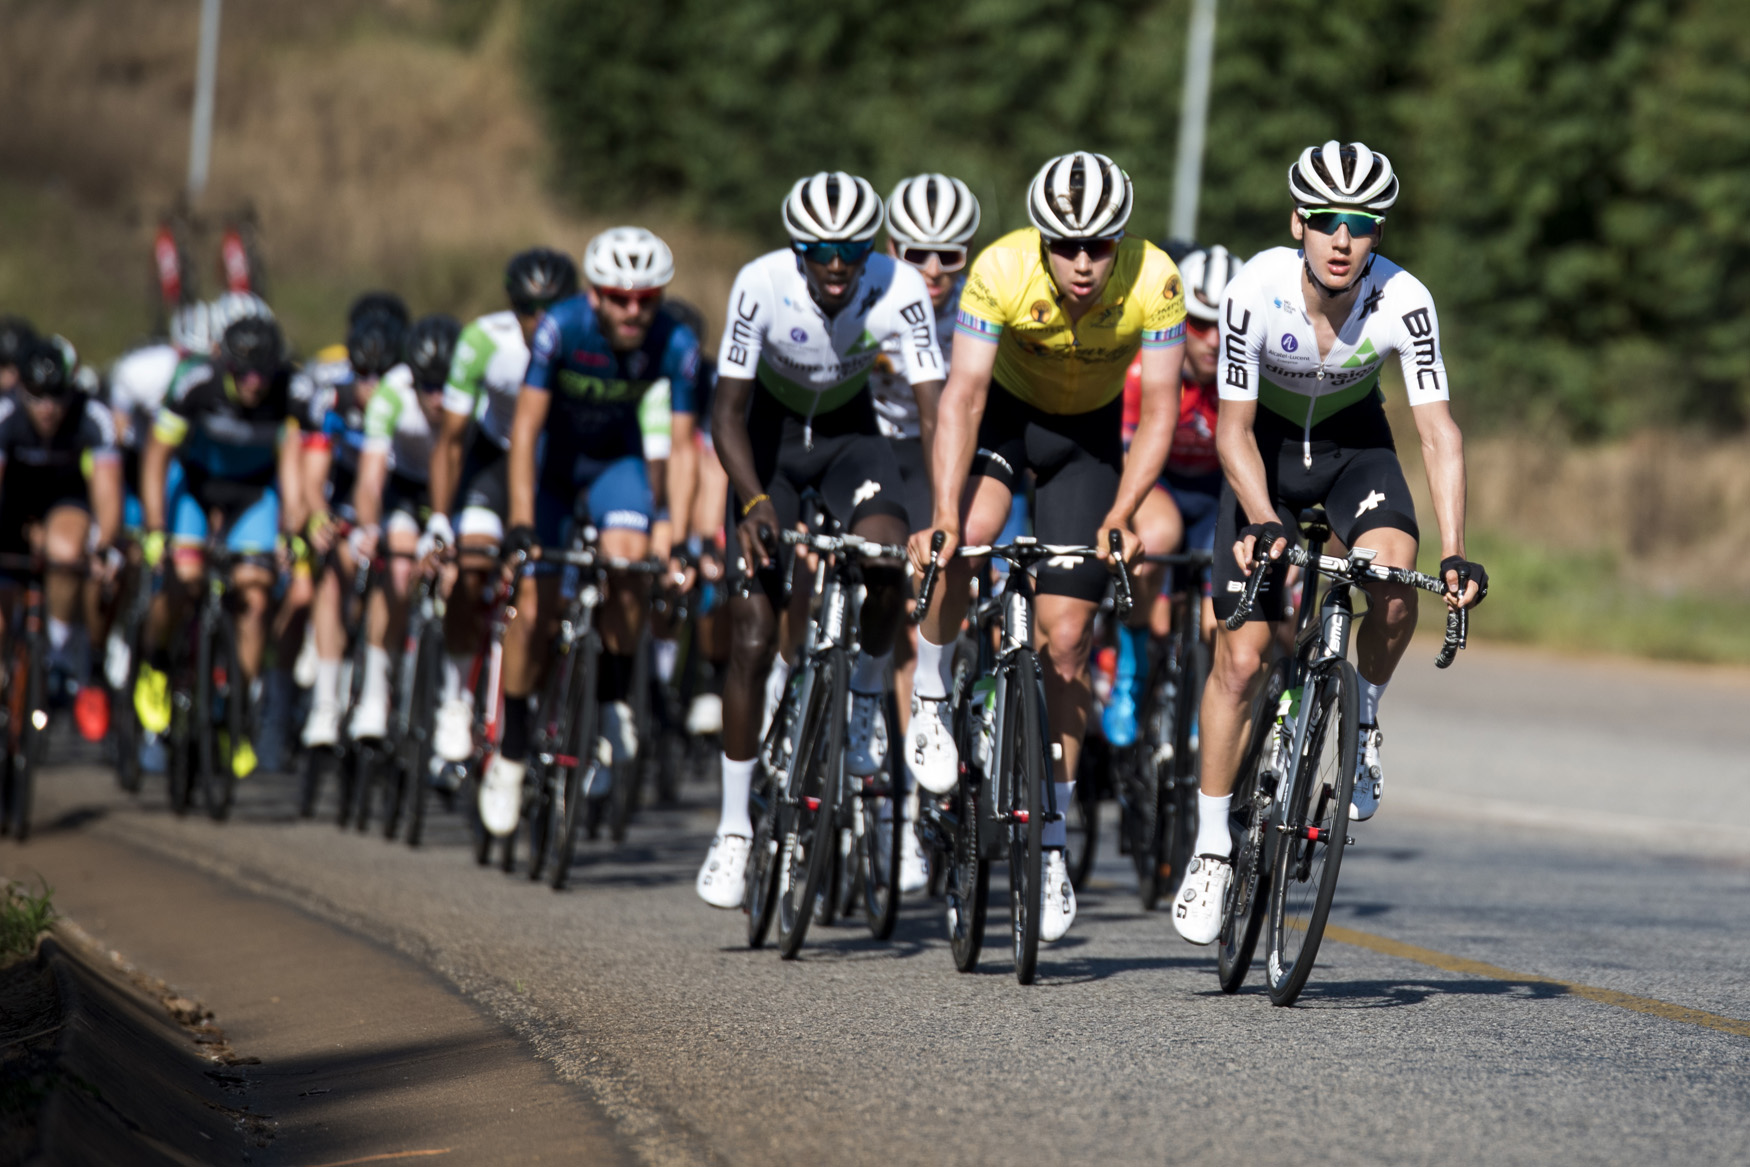 Team Dimension Data Continental rode a calculated race today and showed their class from Tzaneen to Old Coach Road, Mt. Agatha, on Stage 3 of the 2019 Tour de Limpopo (UCI 2.2) from 14-18 May © Tour de Limpopo/Andrew Mc Fadden